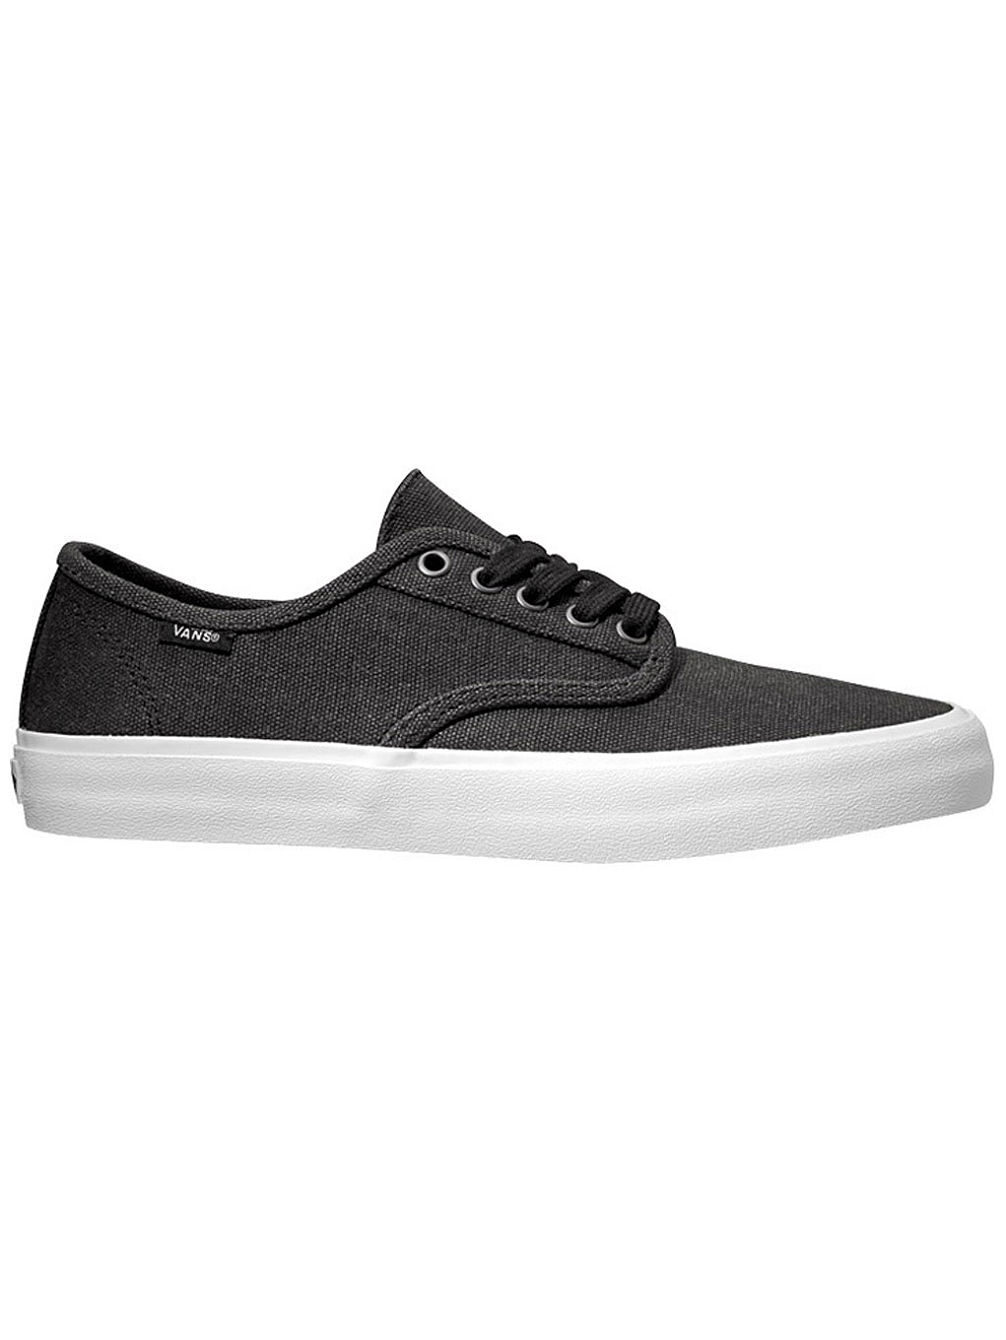 0184f02839 Buy Vans Aldrich Sf Sneakers online at Blue Tomato